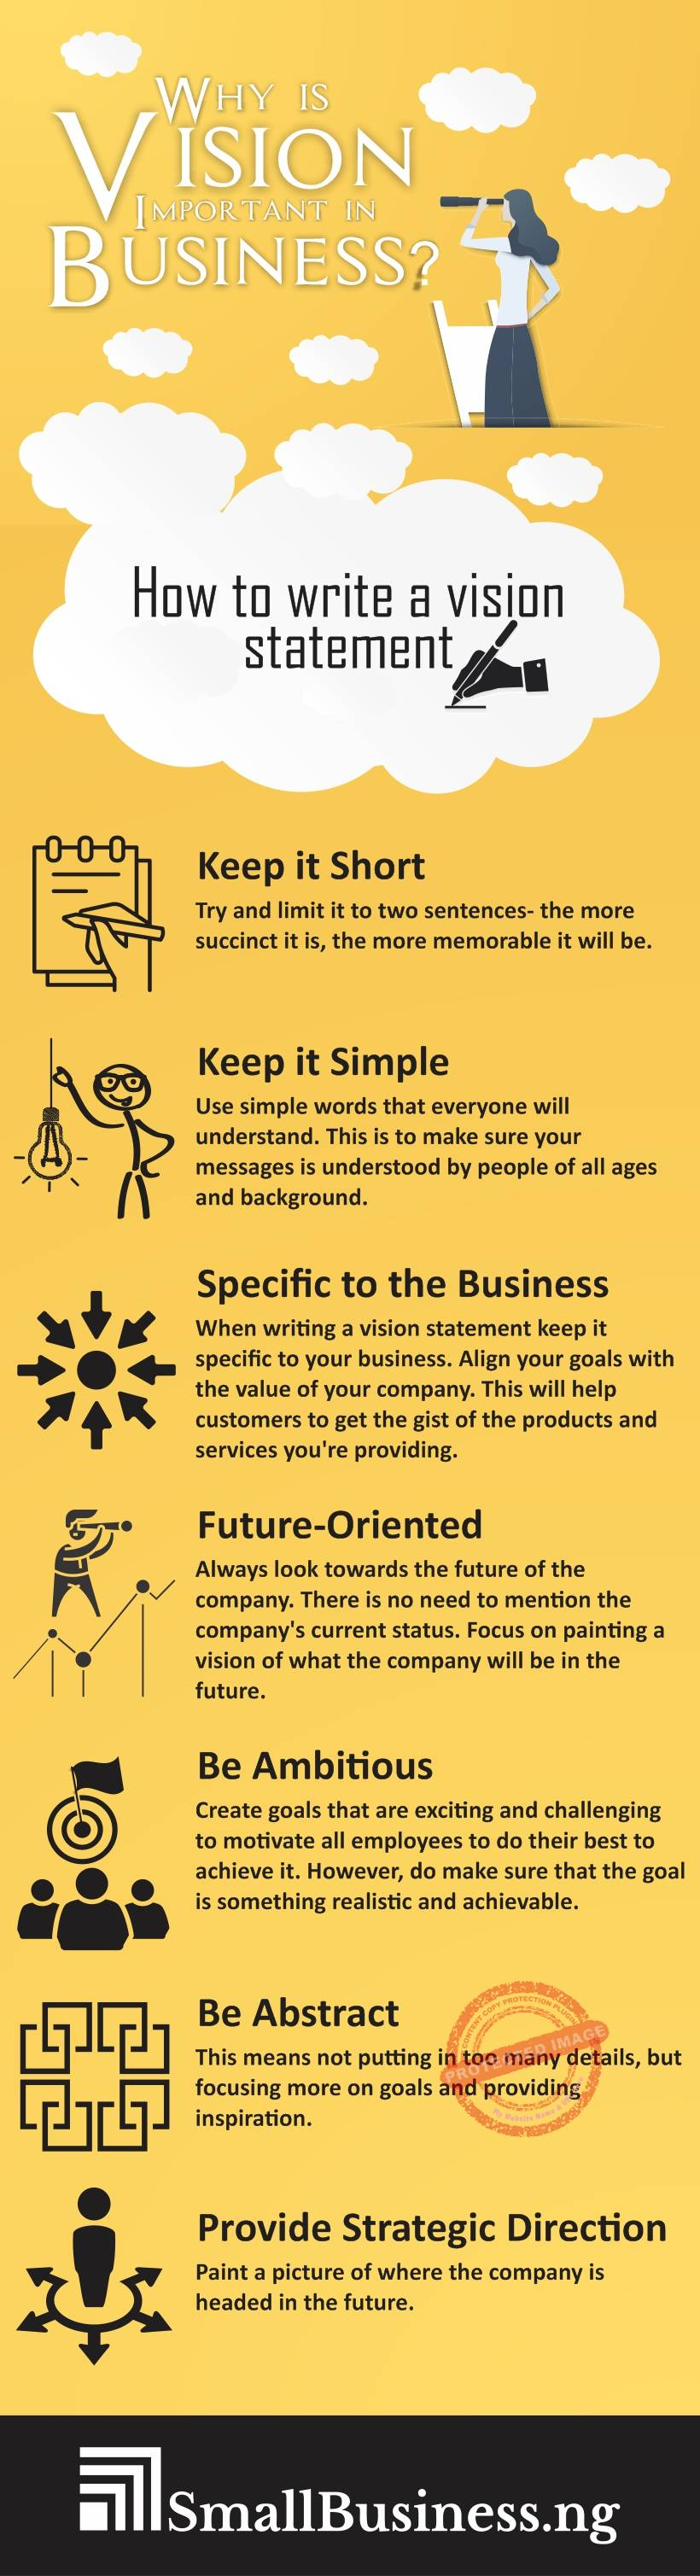 Why is vision important in business infographic